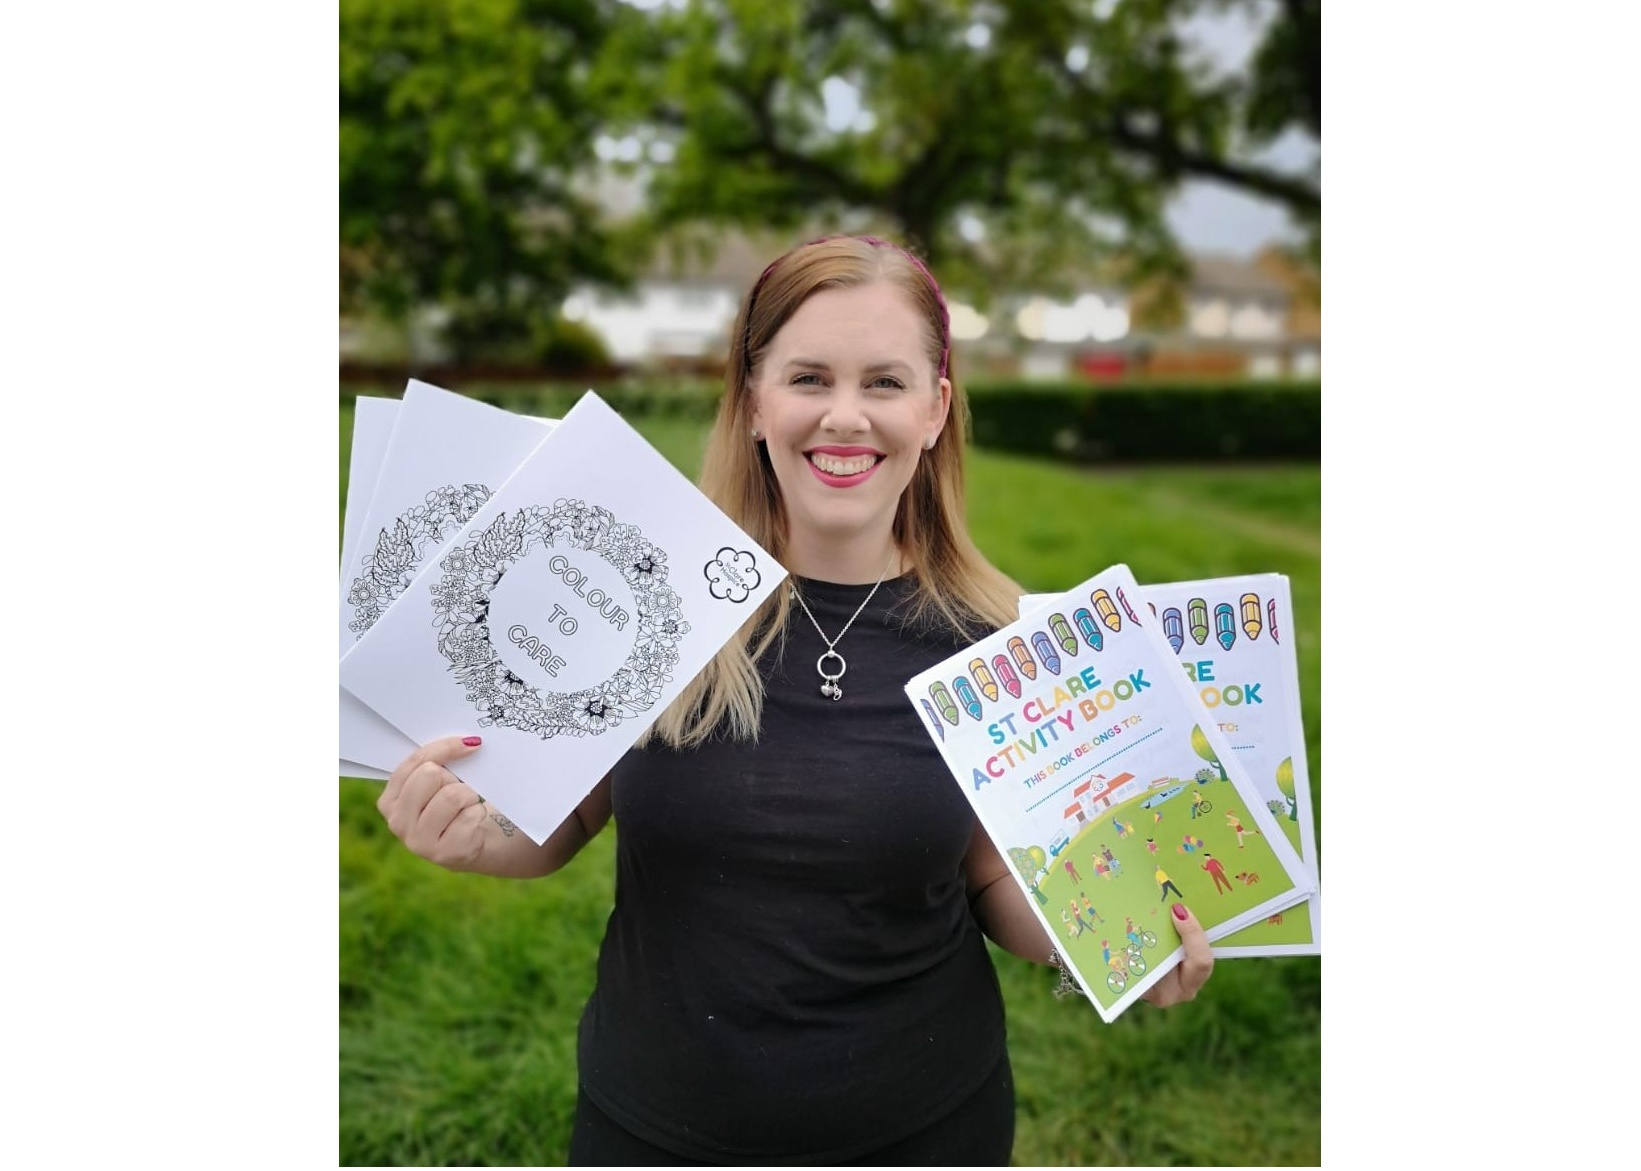 Colour to care: Hospice launches colouring and activity books to help ease anxiety and raise vital funds